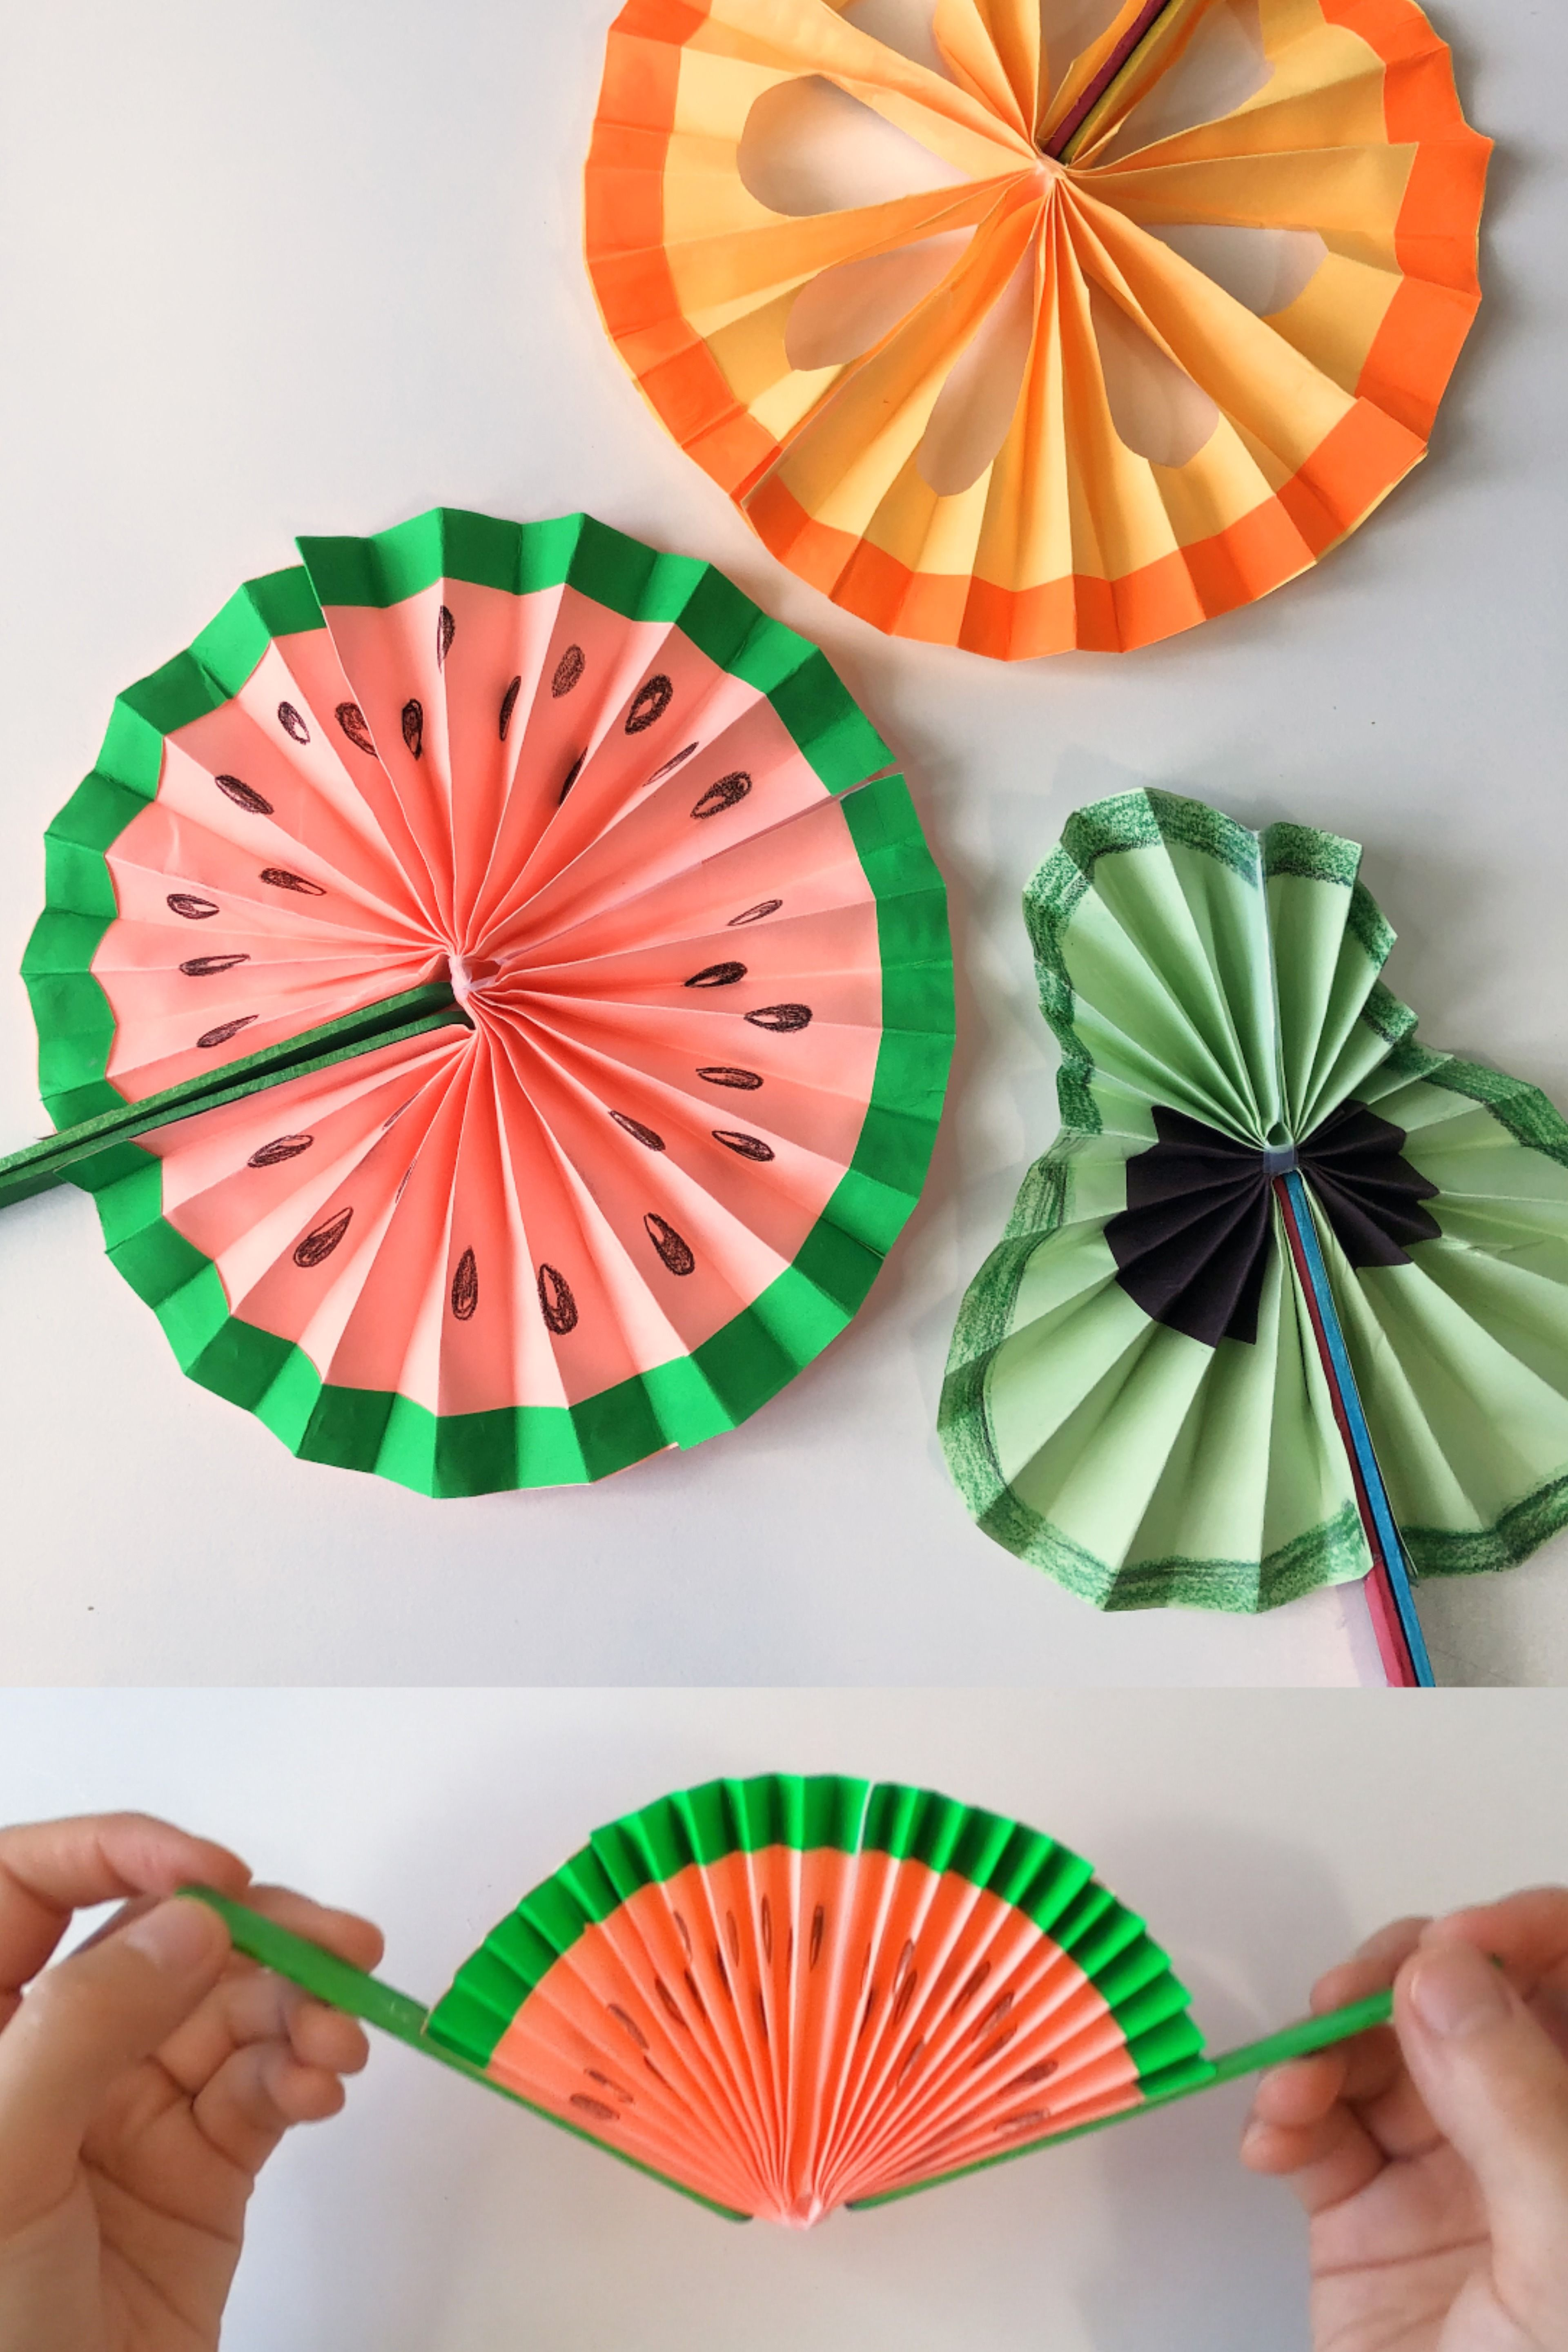 15+ Arts and crafts to do at home with paper ideas